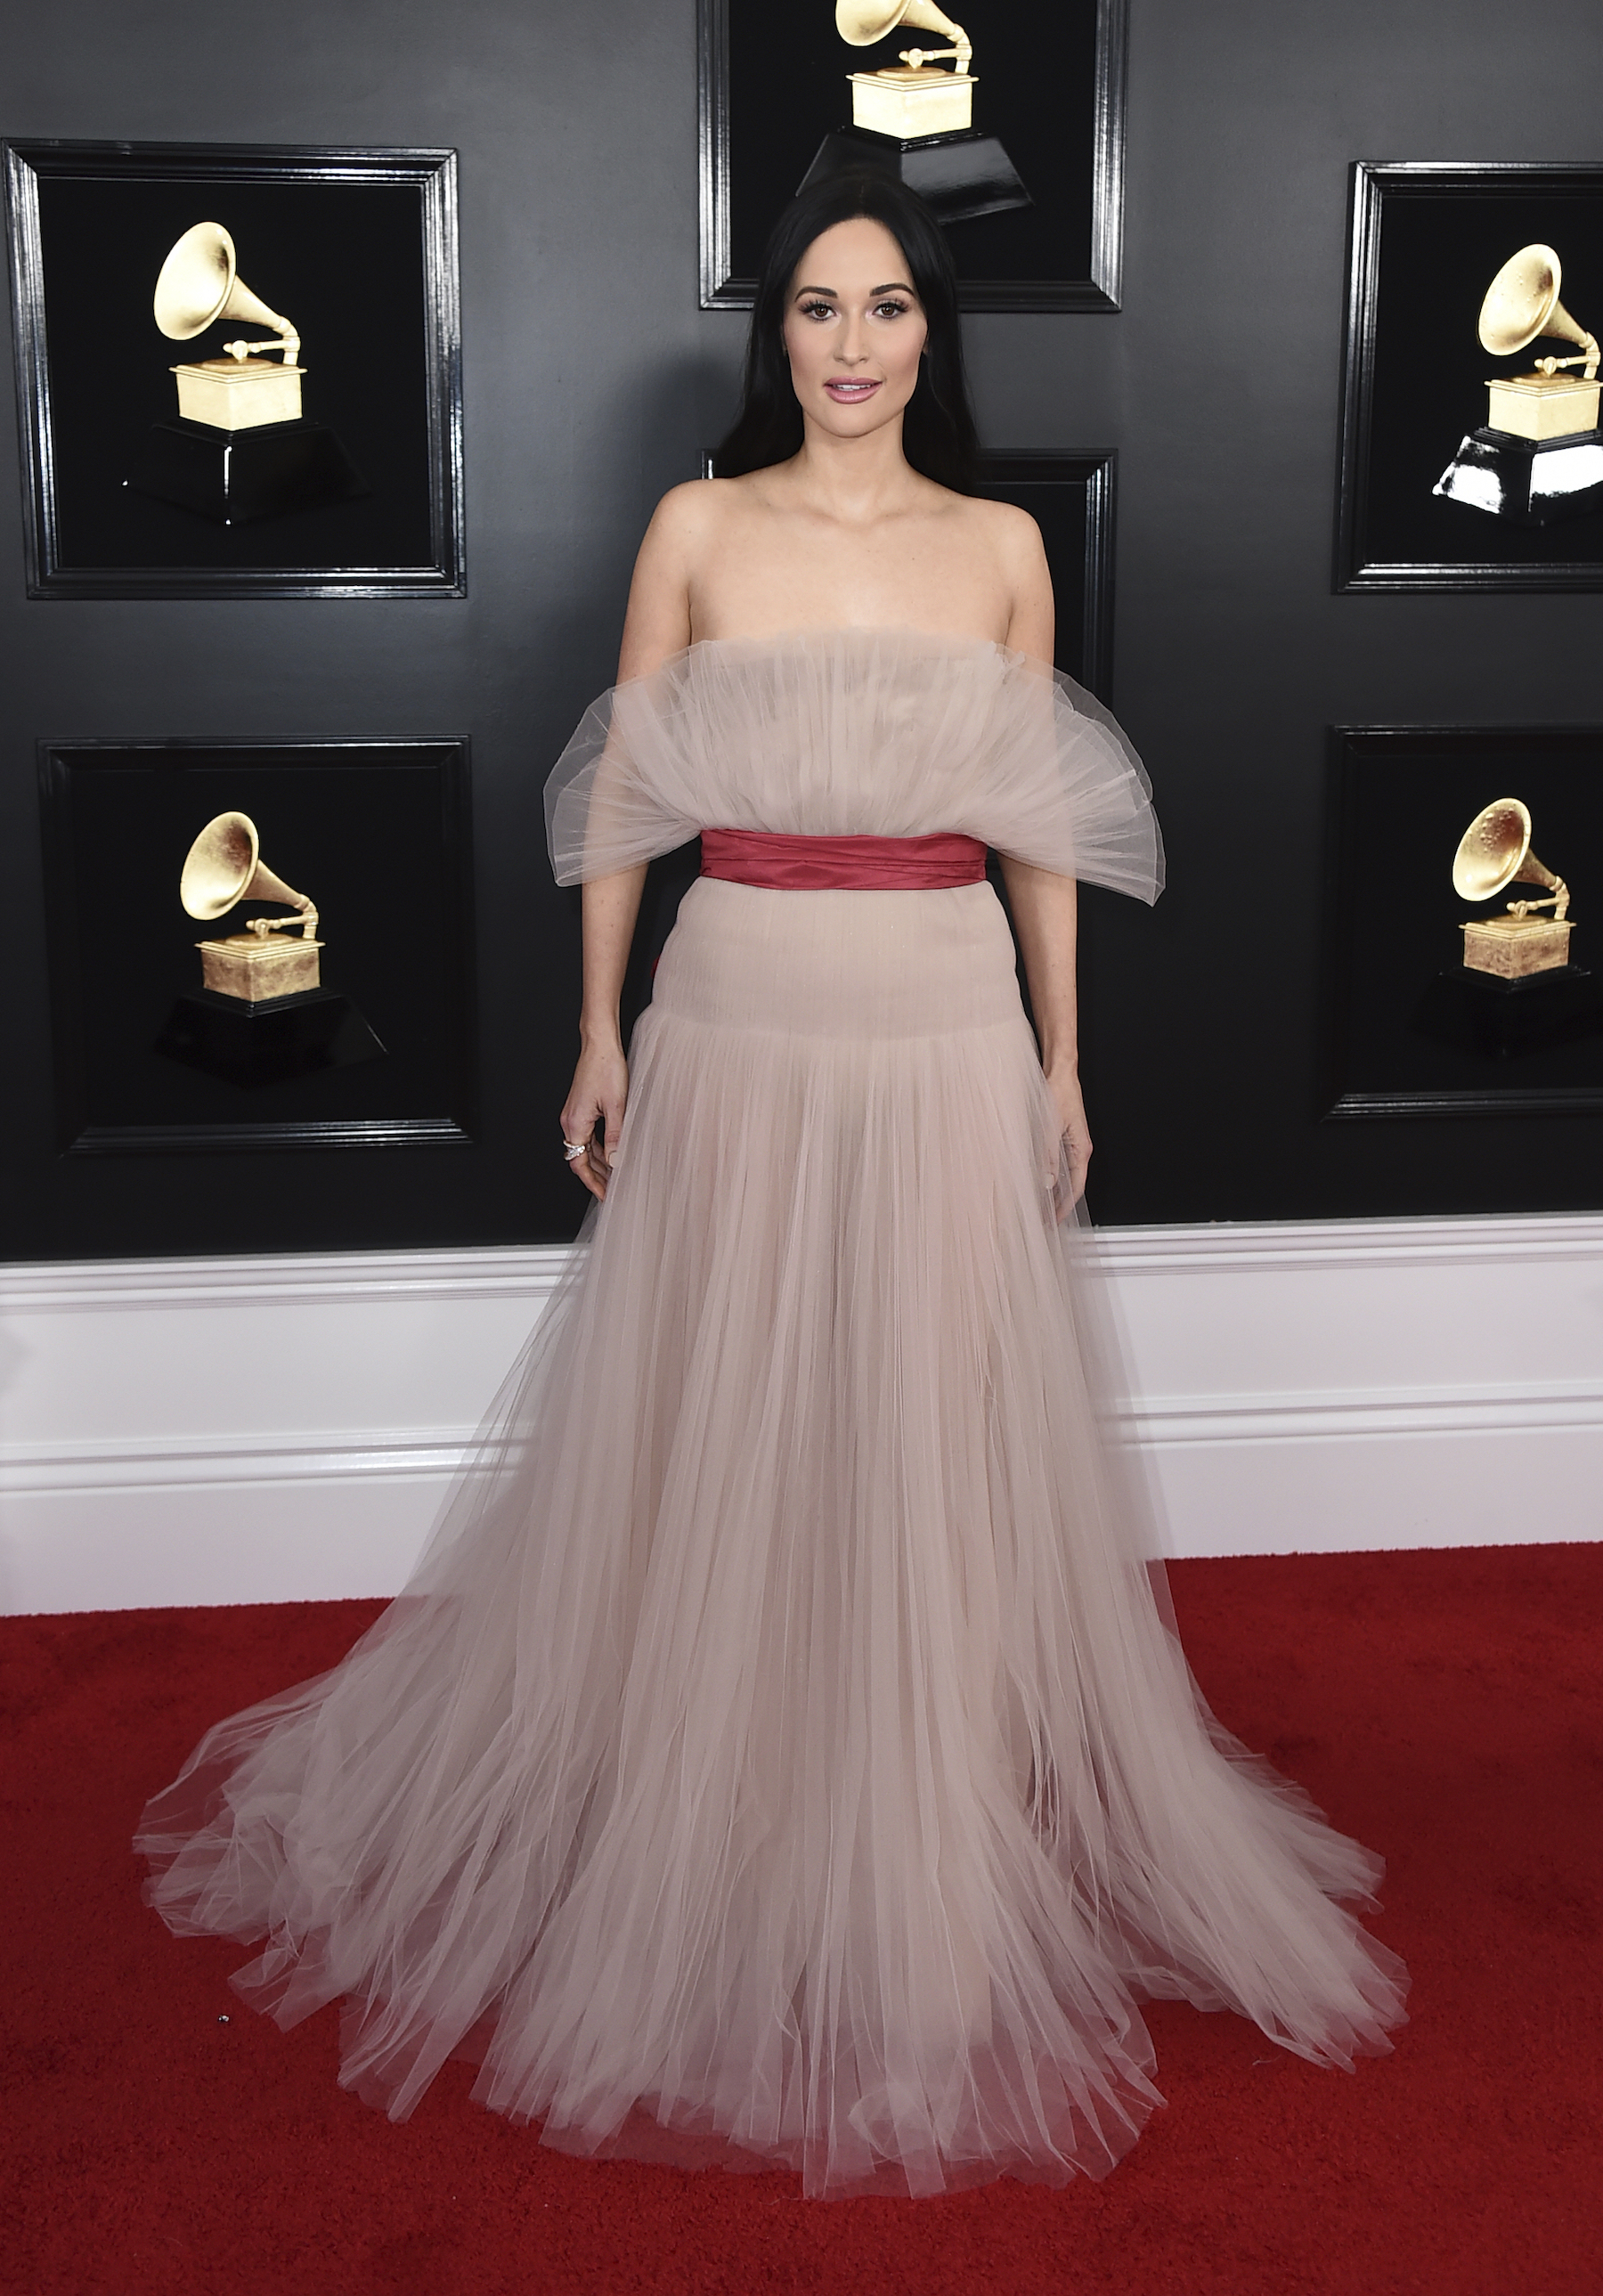 "<div class=""meta image-caption""><div class=""origin-logo origin-image ap""><span>AP</span></div><span class=""caption-text"">Kacey Musgraves arrives at the 61st annual Grammy Awards at the Staples Center on Sunday, Feb. 10, 2019, in Los Angeles. (Jordan Strauss/Invision/AP)</span></div>"